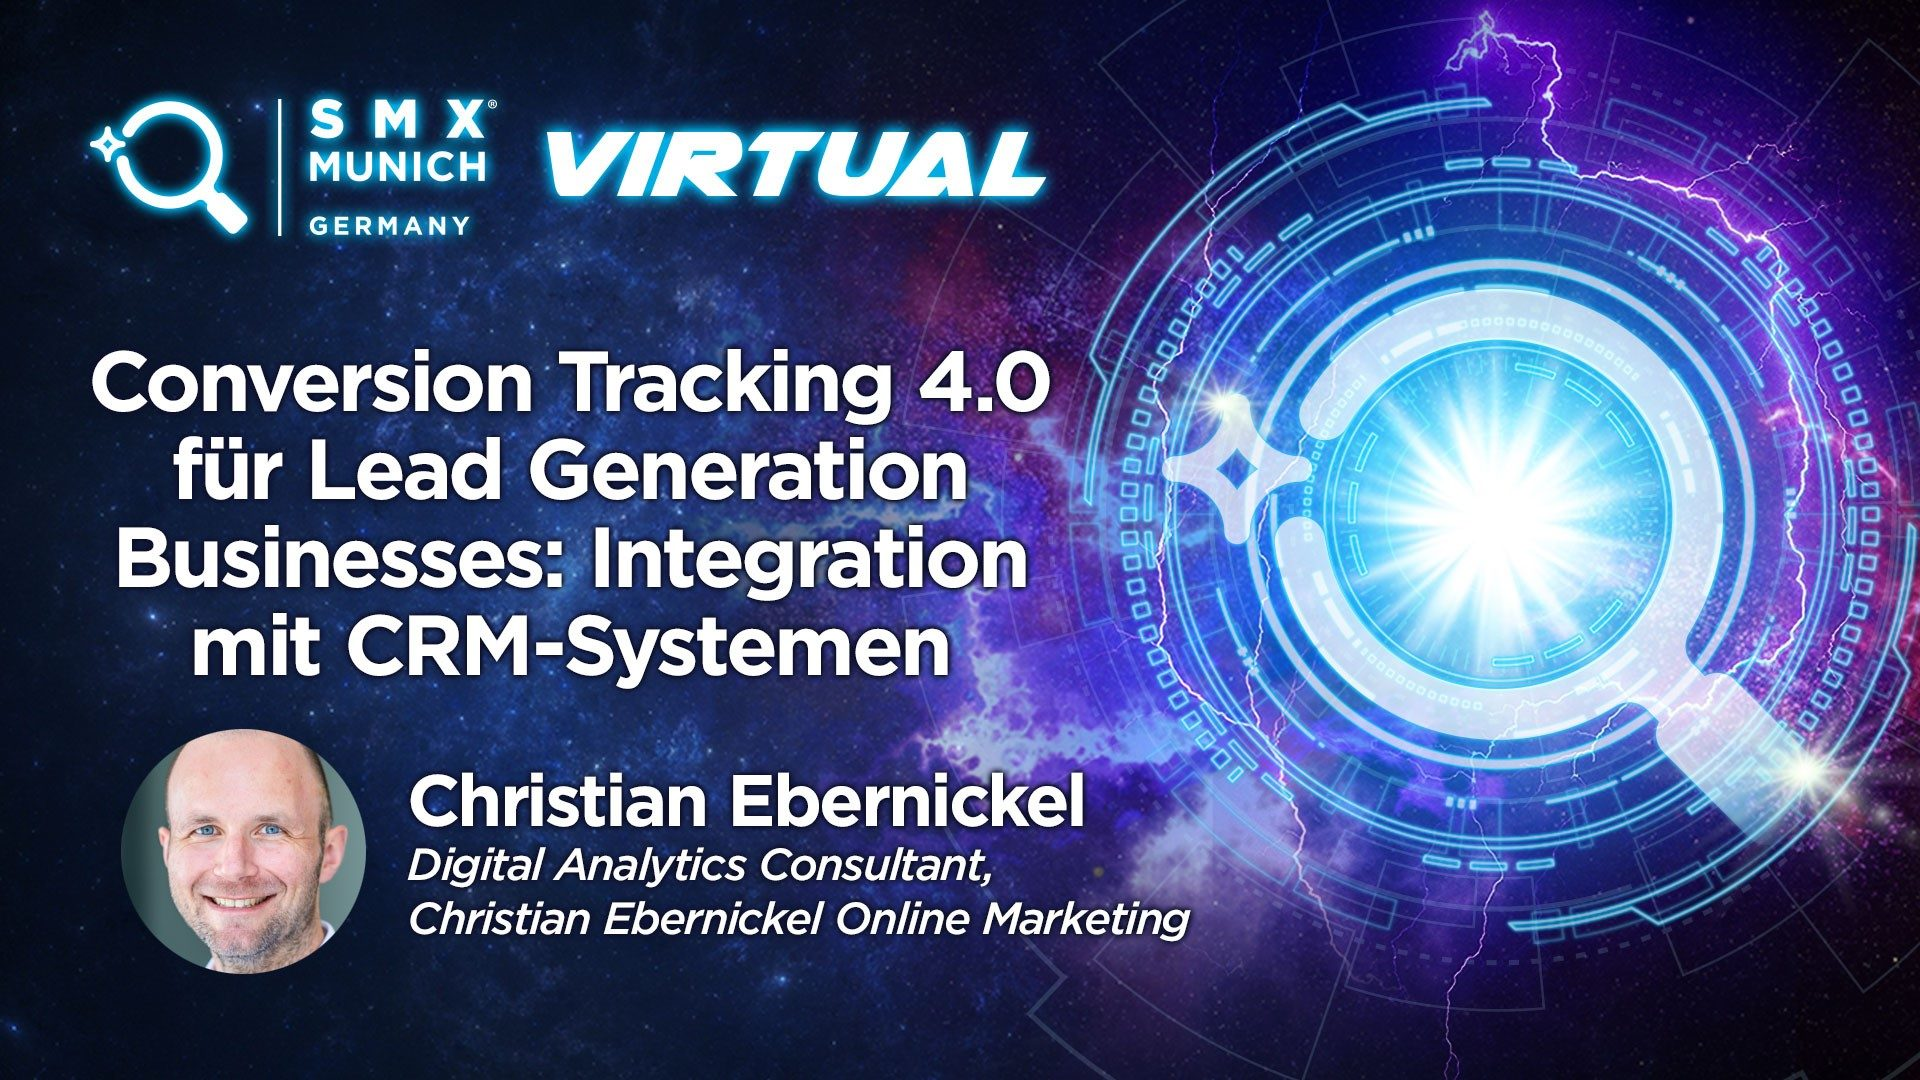 Conversion Tracking 4.0 für Lead Generation Business: Integration mit CRM-Systemen. Christian Ebernickel, SMX 2020